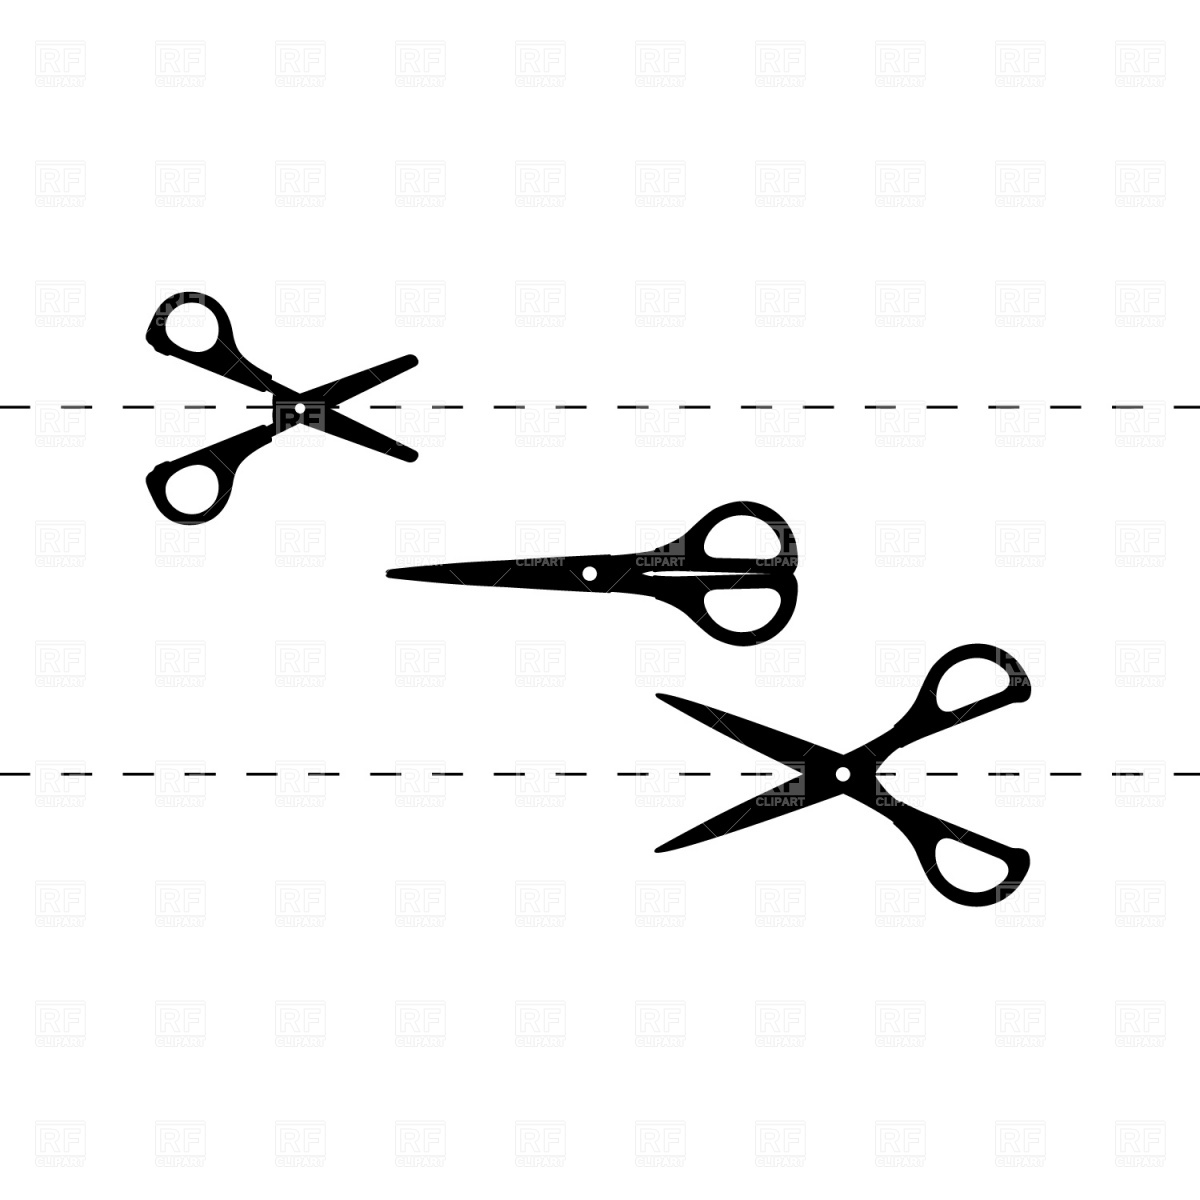 Free Cutting Line Cliparts, Download Free Clip Art, Free.